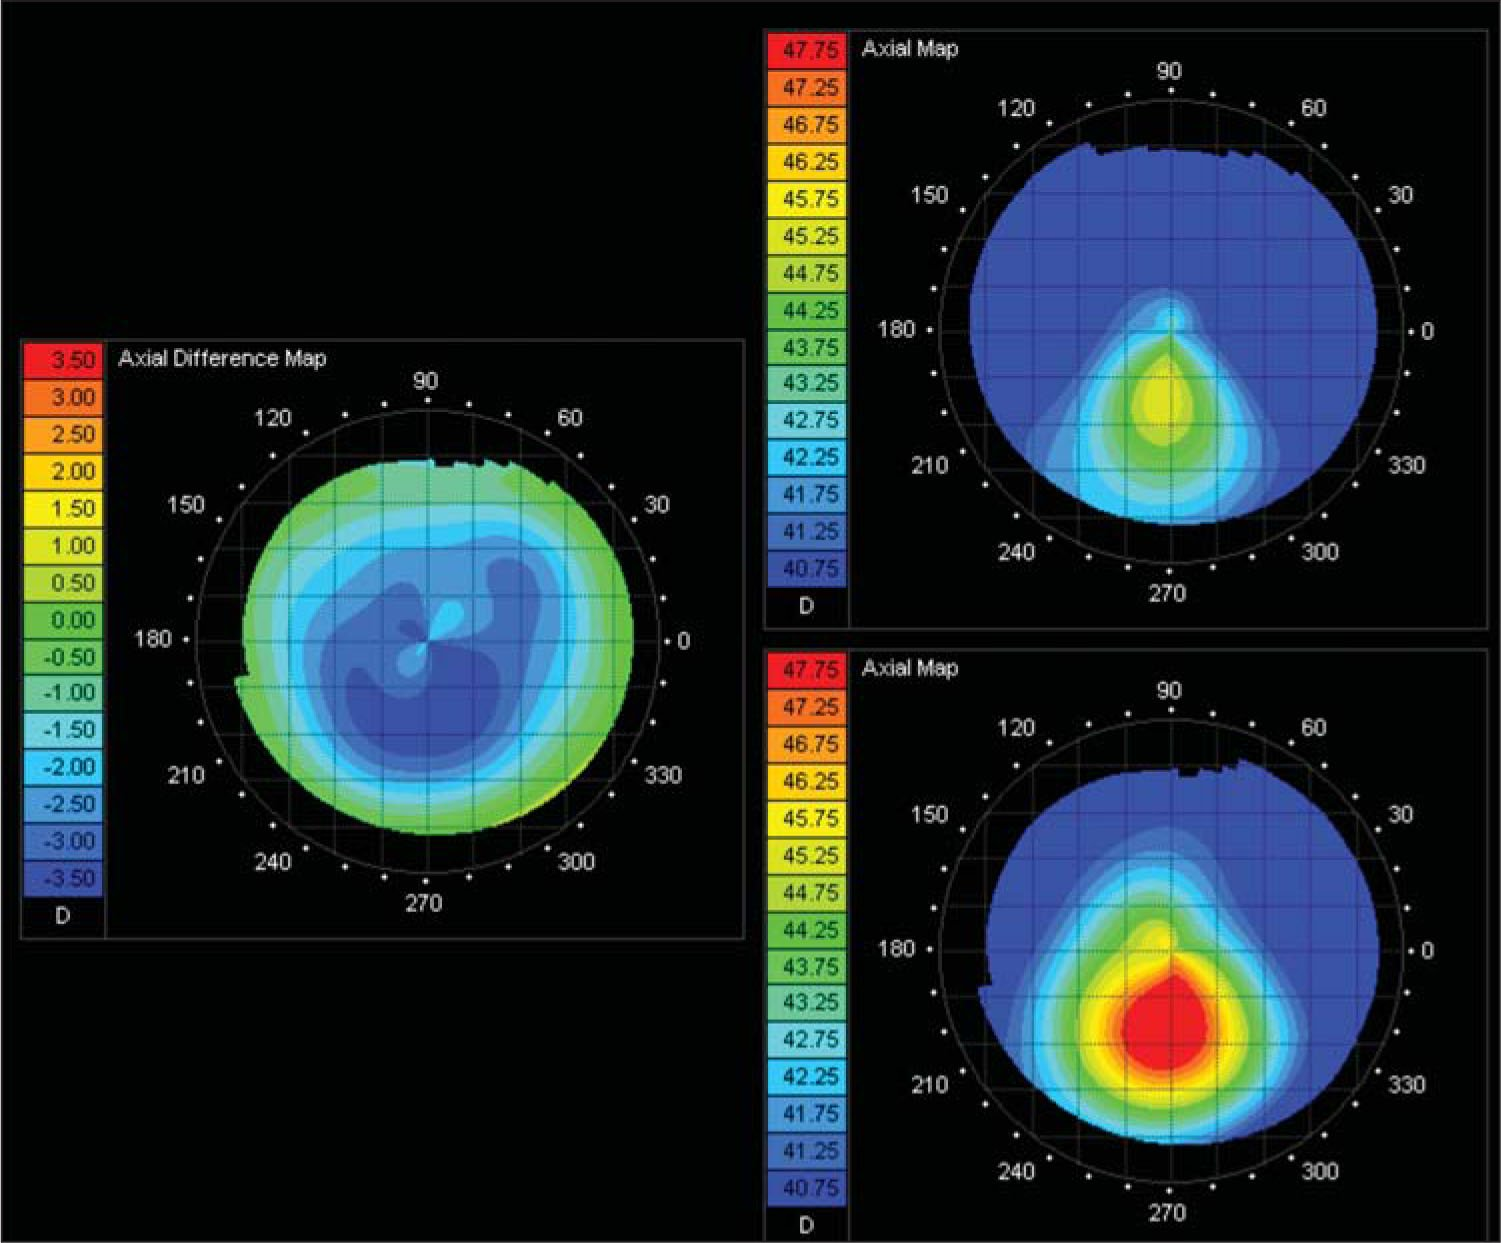 Preoperative Axial Map (bottom Right), Postoperative Axial Map (top Right), and Difference Axial Map (left), Showing Significant Topographic Improvement Following Topography-Guided Photorefractive Keratectomy and Corneal Cross-Linking.